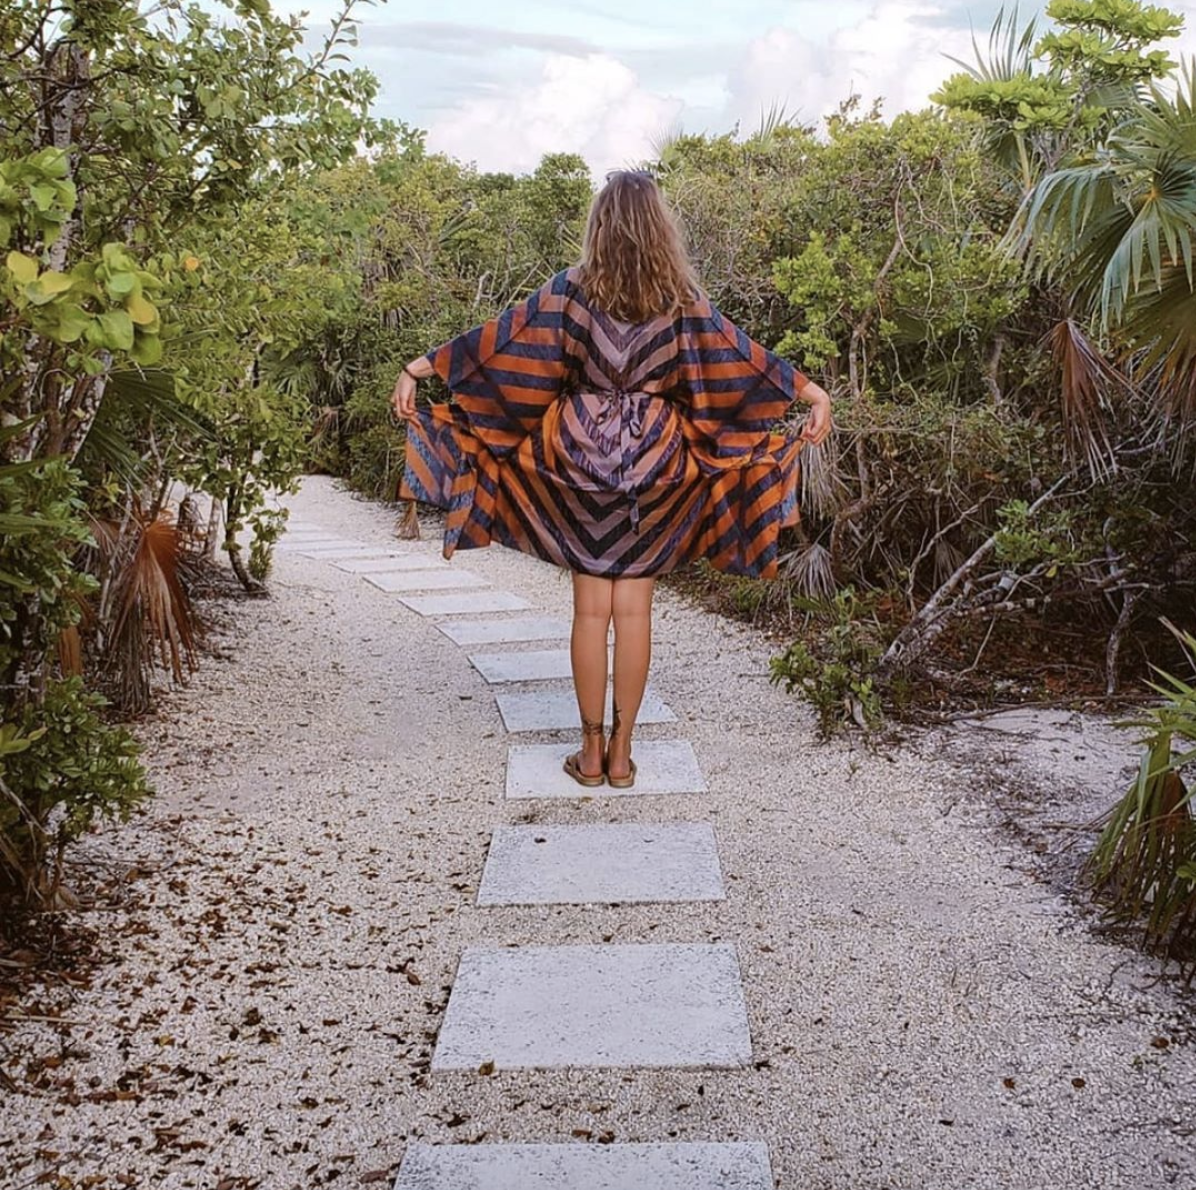 • #seasagespotted - the sunset kaftan- providenciales, turks & caicos - @corgisandlattes •